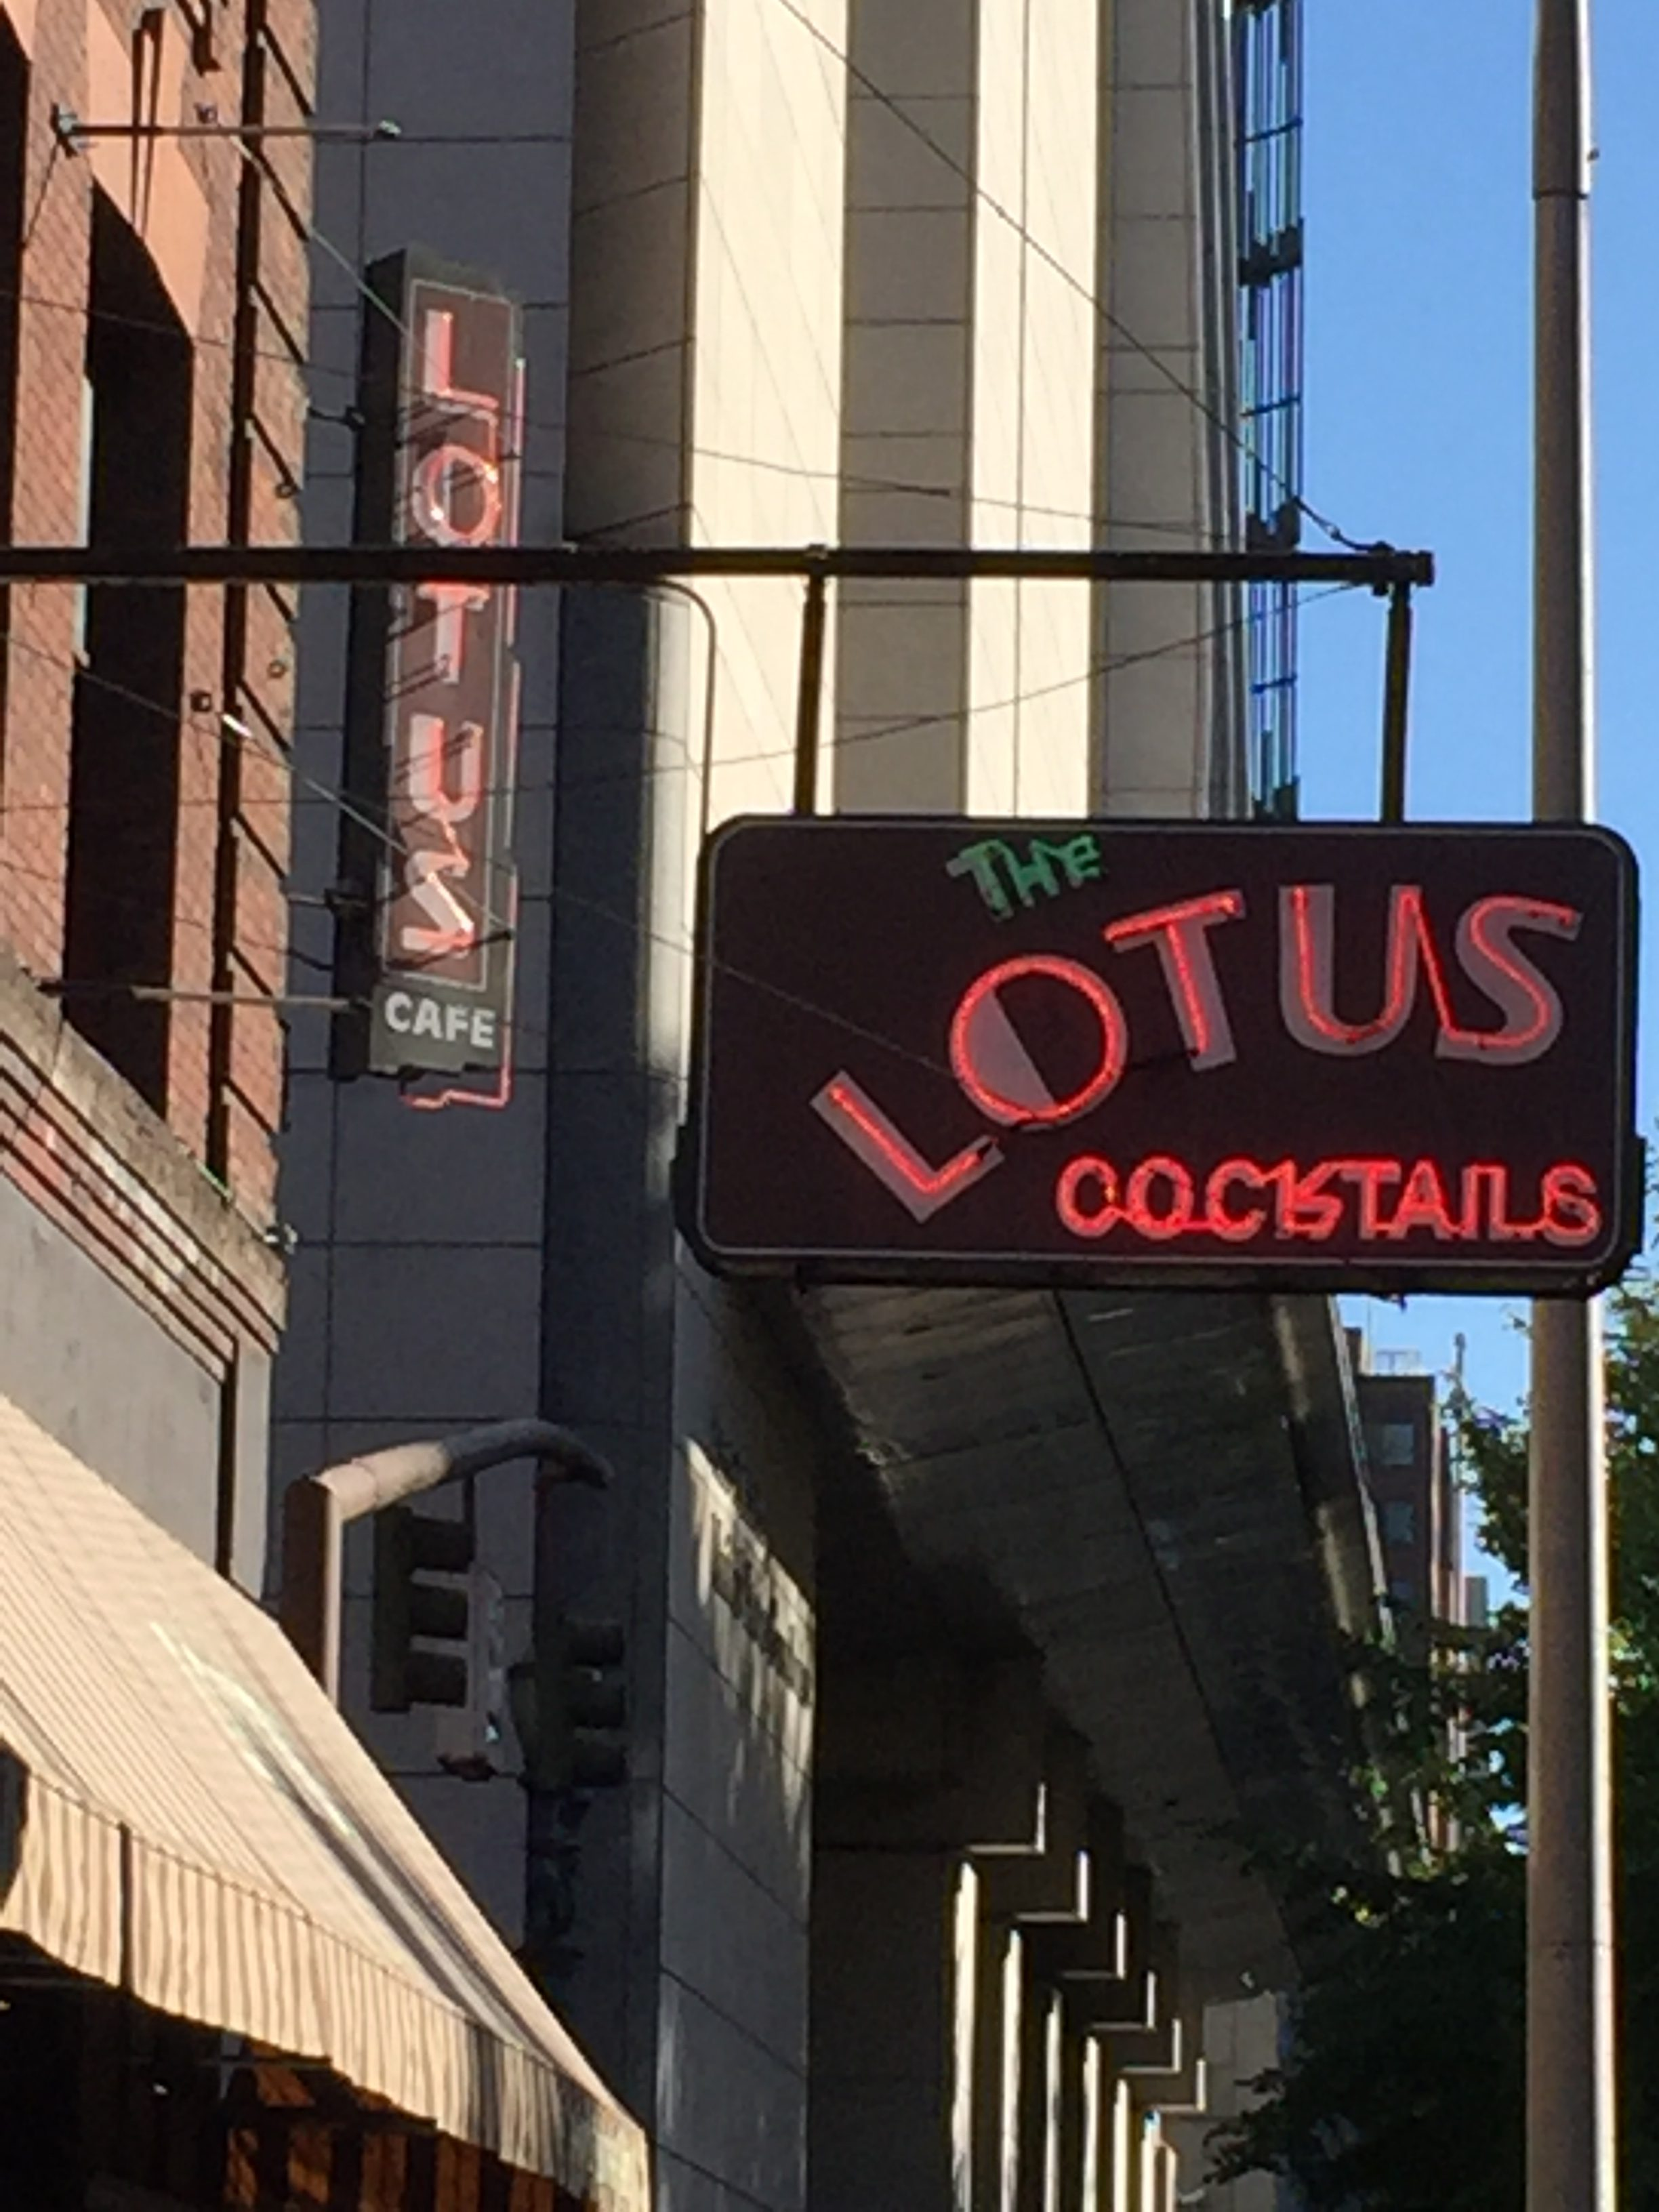 The sign from The Lotus Cardroom will soon come down to make way for more Portland development. (FoystonFoto)